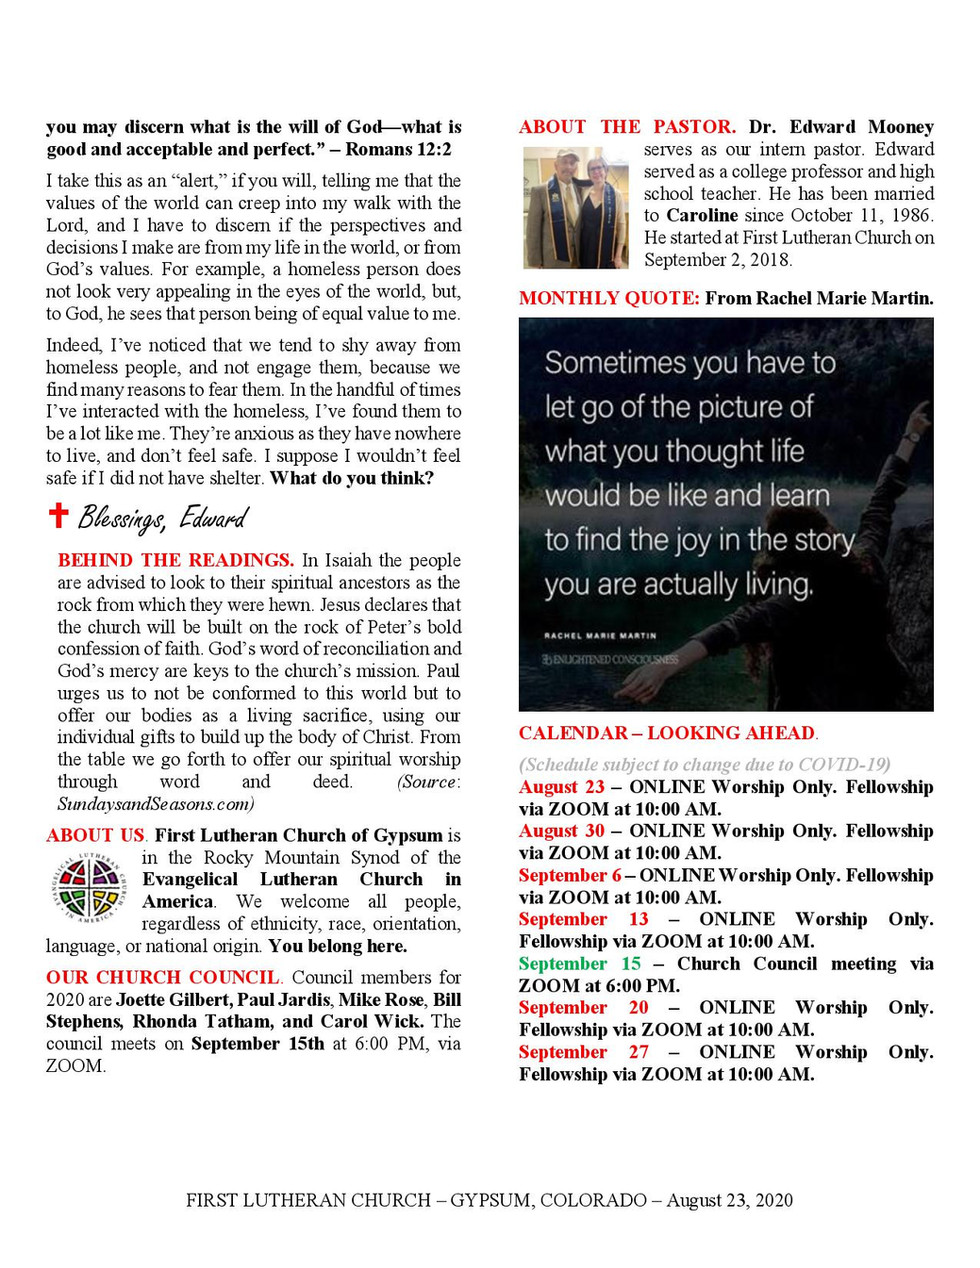 Newsletter, August 23, 2020, page 2